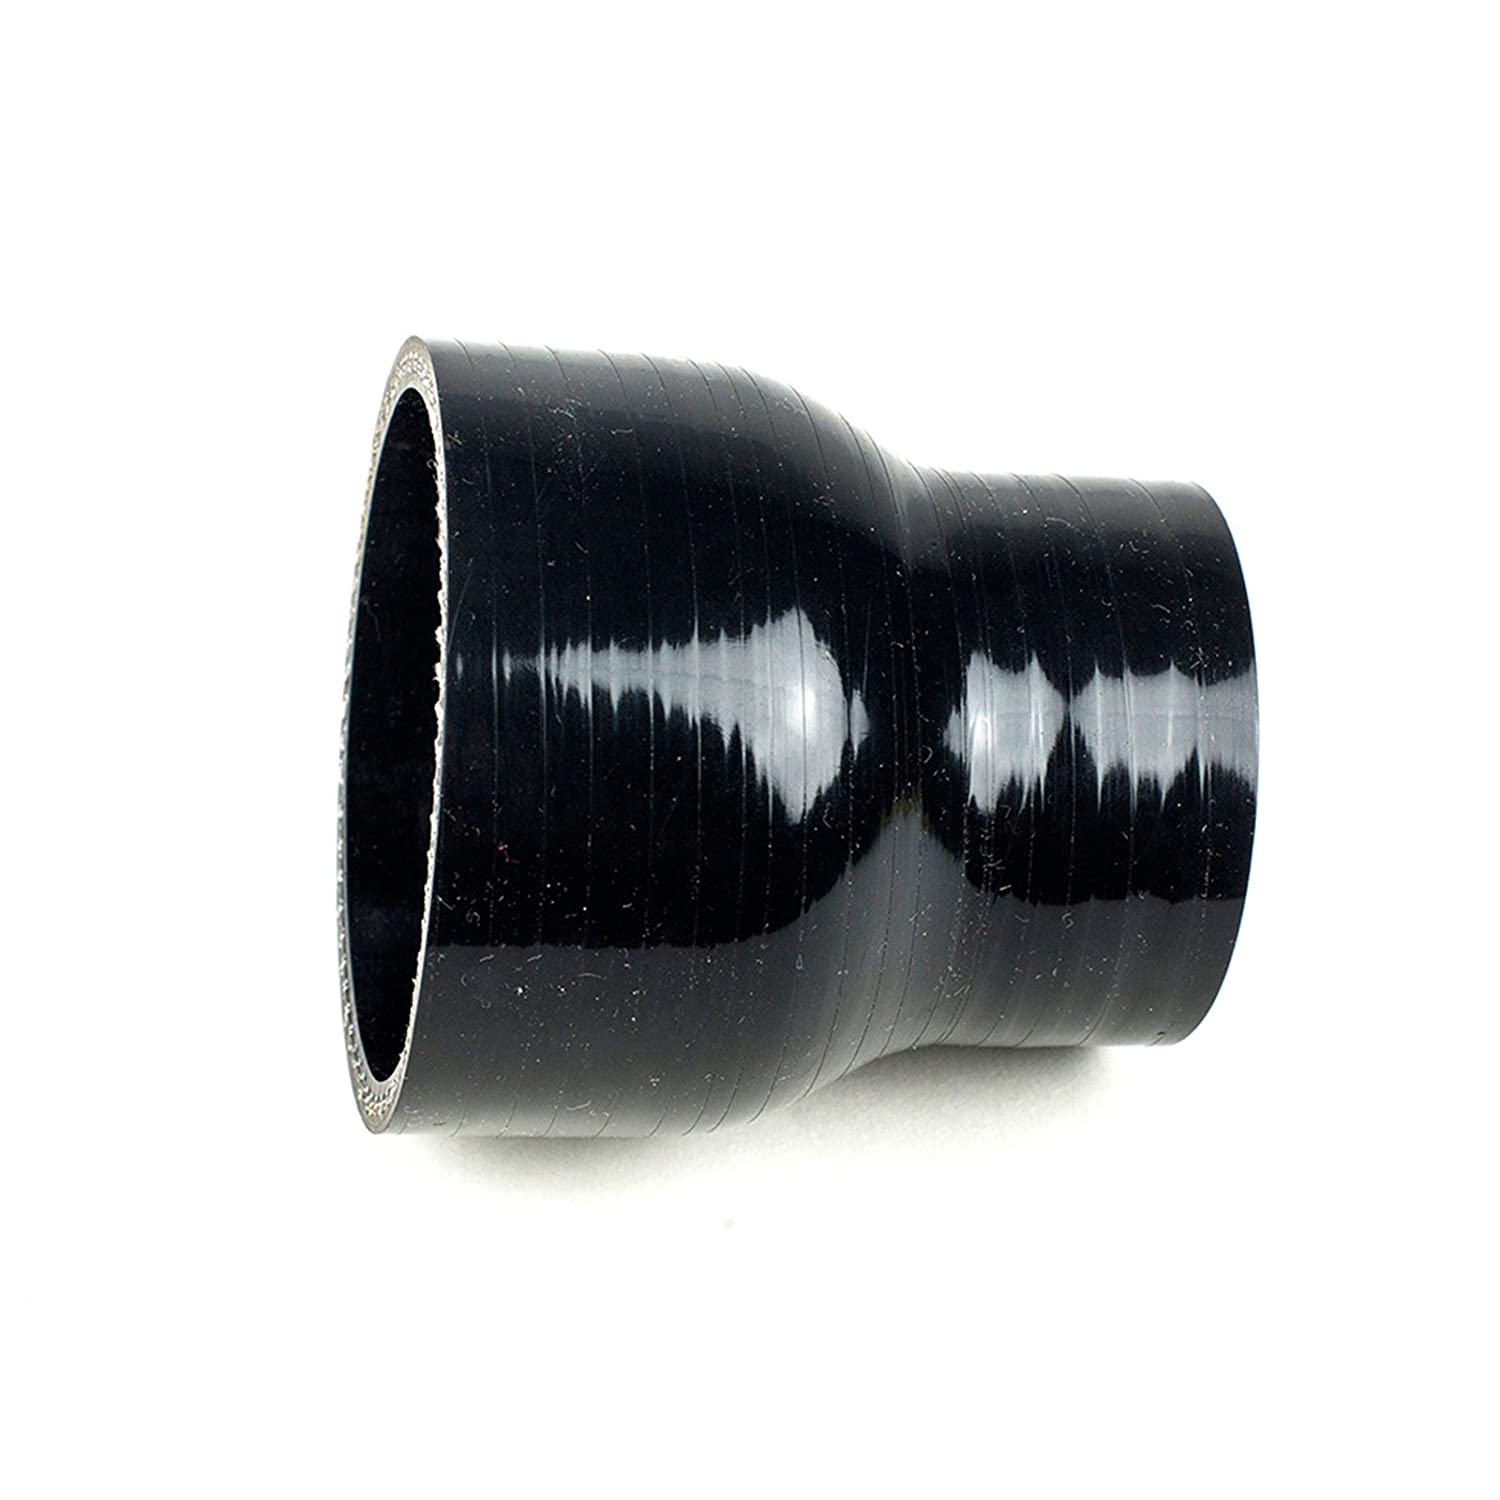 Squirrelly 2.75 to 2.5 inch Black Silicone Reducer Coupler Turbo Pipe w// 2x T-Bolt Clamps